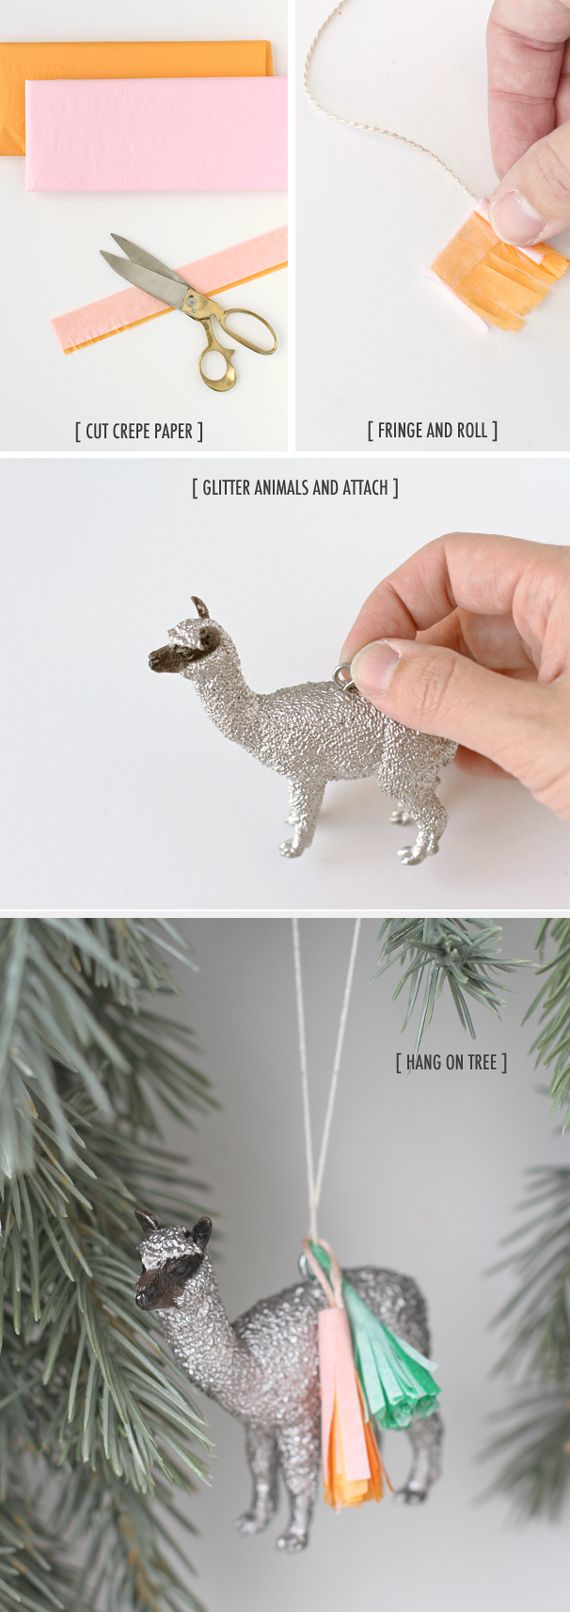 Bright locations     Glitter outlet stores Llamas  las  amp  Ornaments Animal gifts Glitter Christmas  crafts and Ornaments   vegas